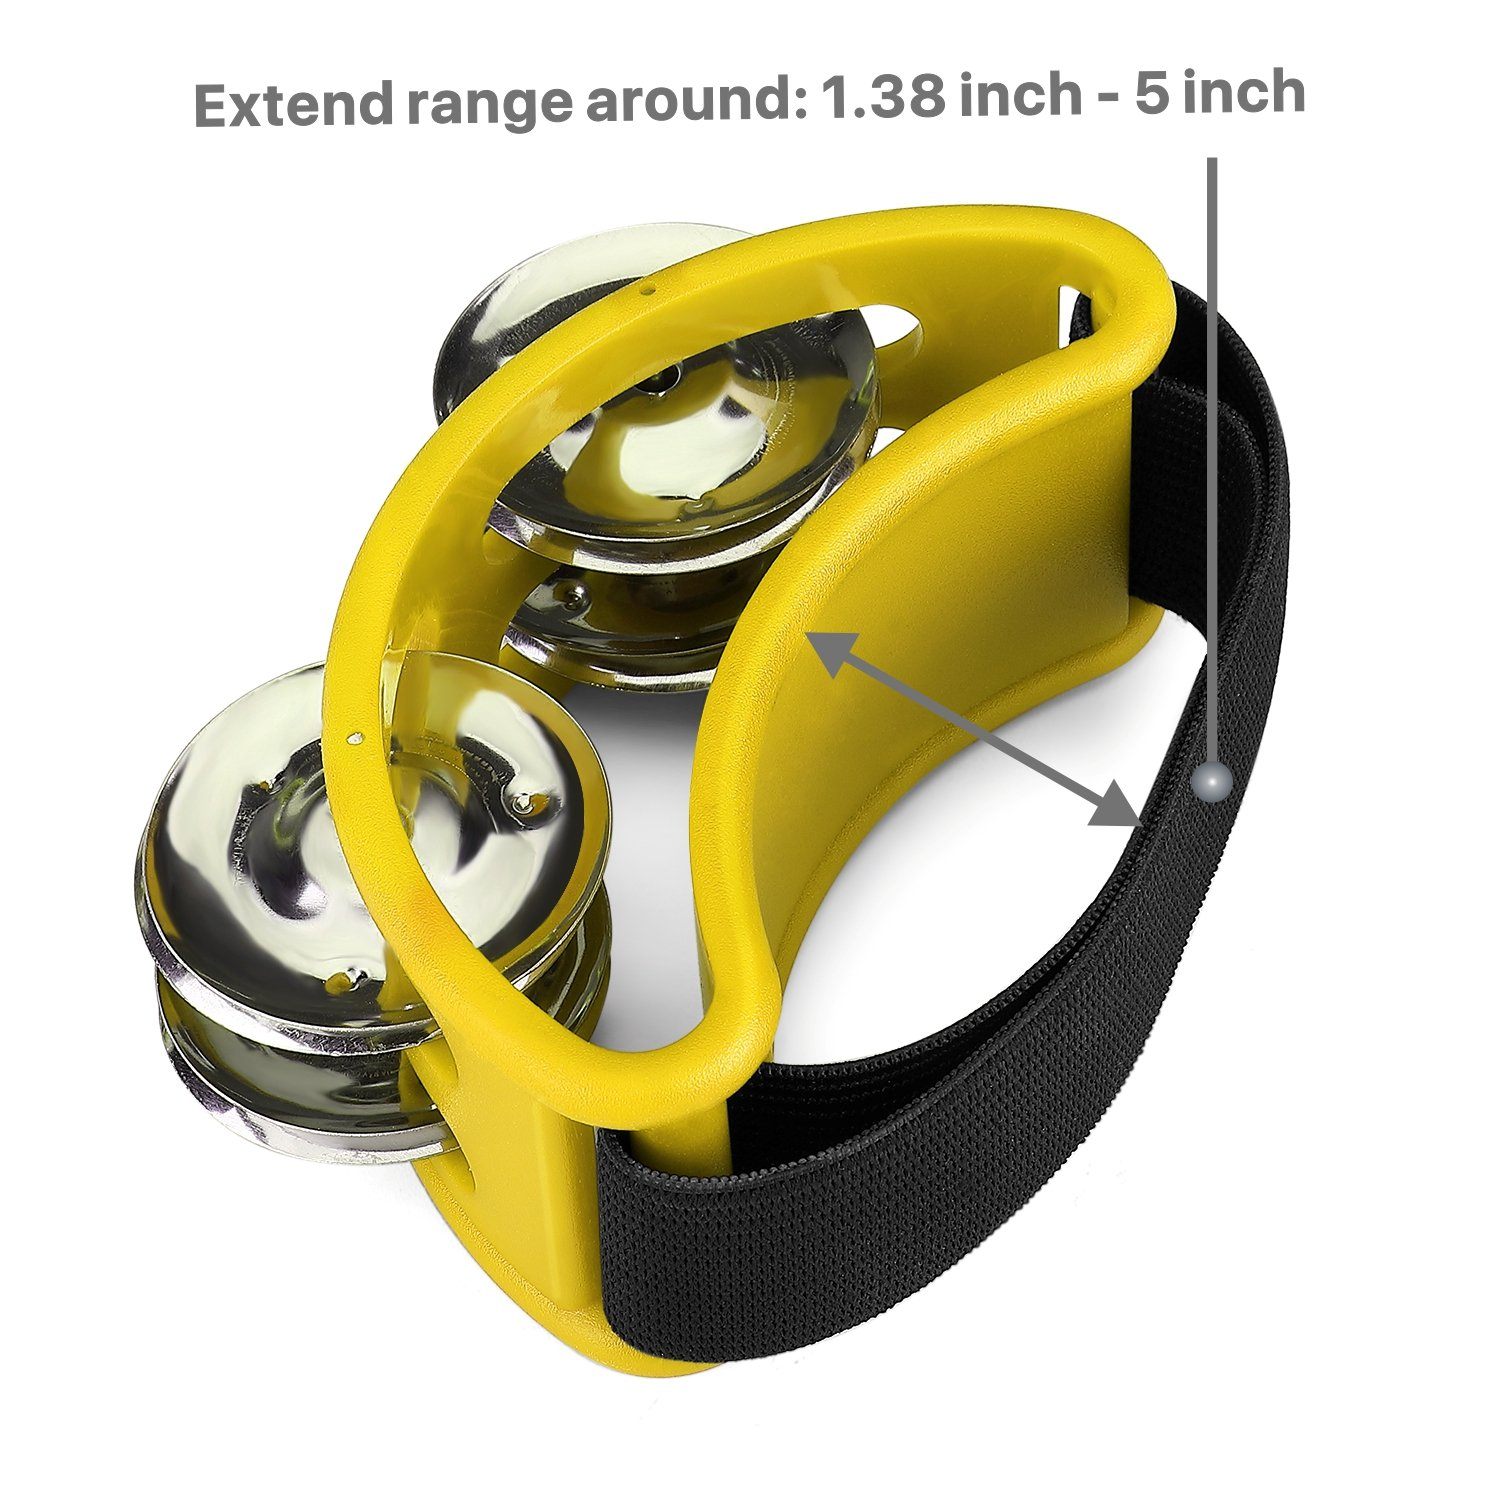 Foot Shaker Musical Instrument Drum for Kids KTV Party Shoes Toy Gift Singer Vocalists Cajon /& Guitar Players Flexzion Foot Tambourine Percussion with Double Row Steel Jingles Yellow